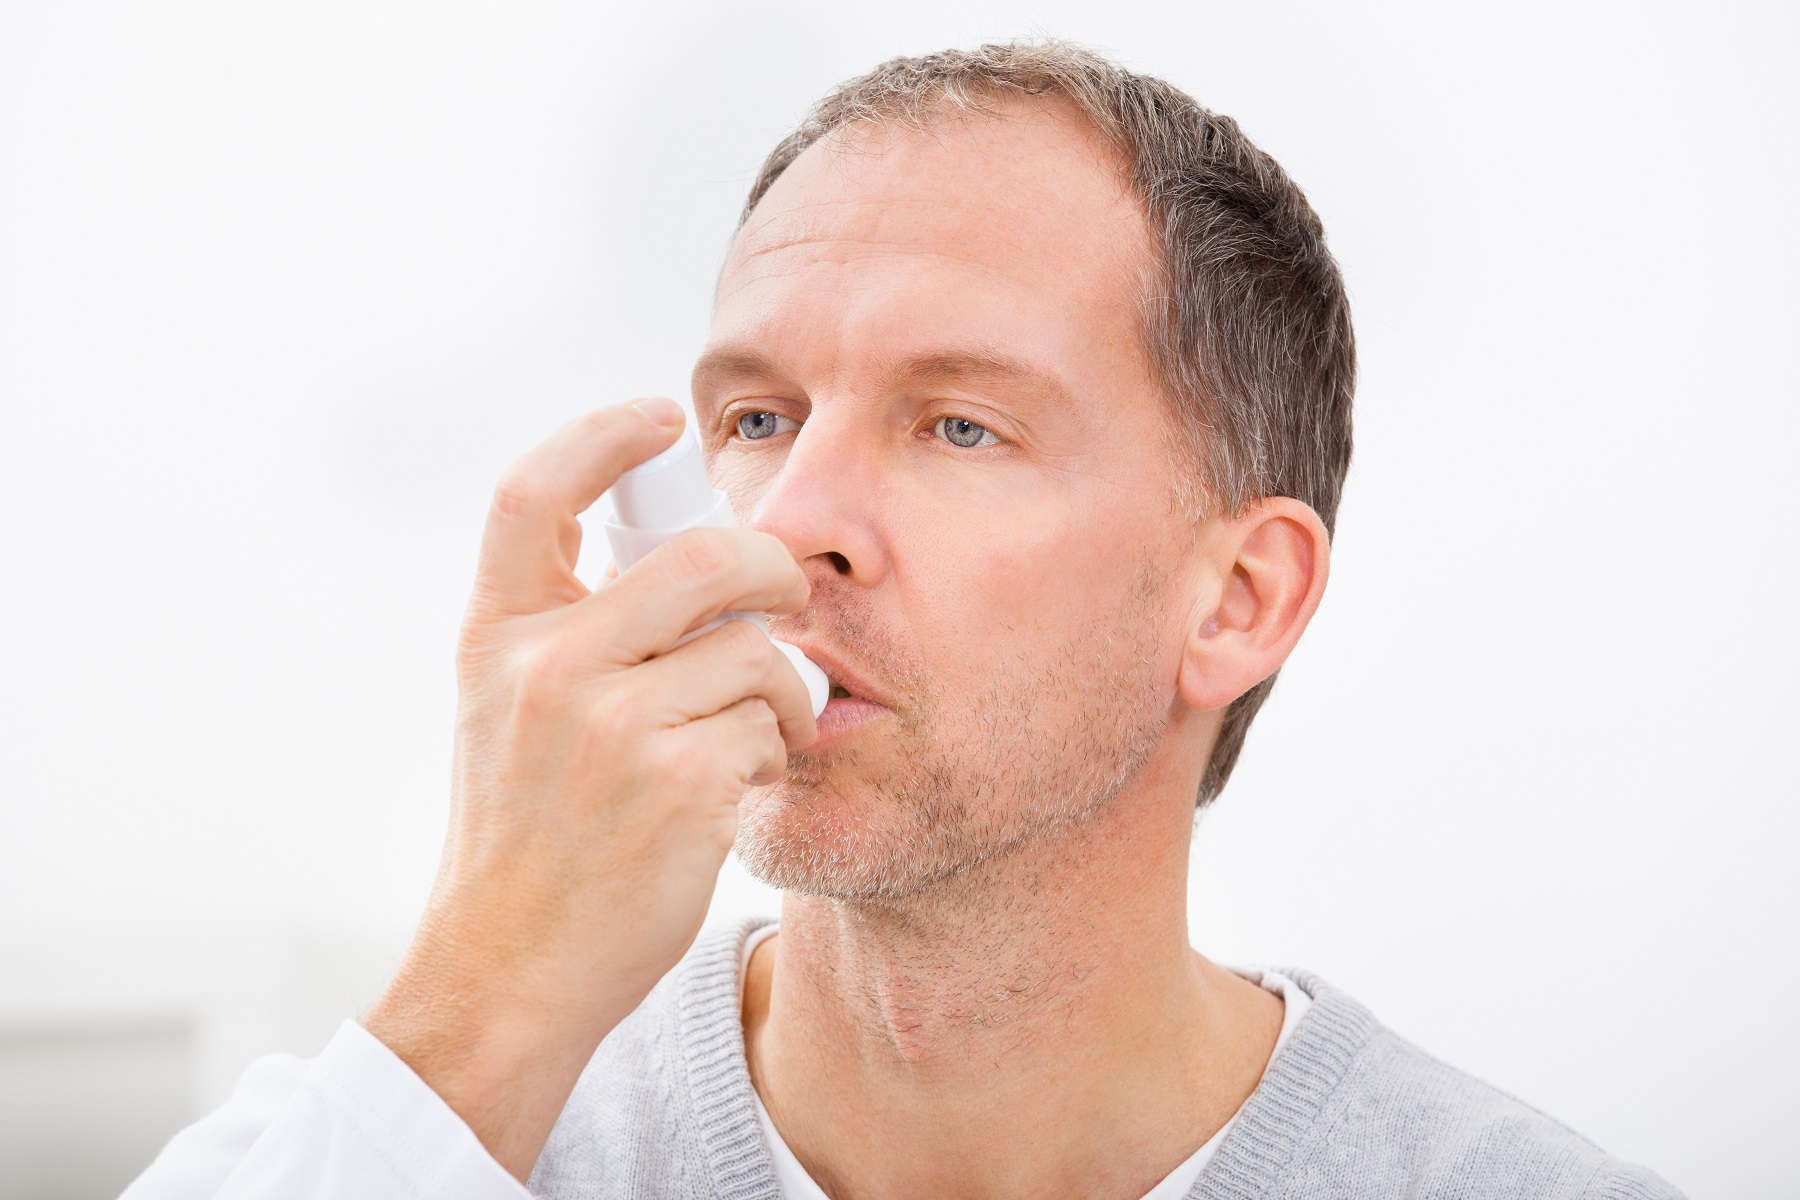 asthma, hay fever or allergies